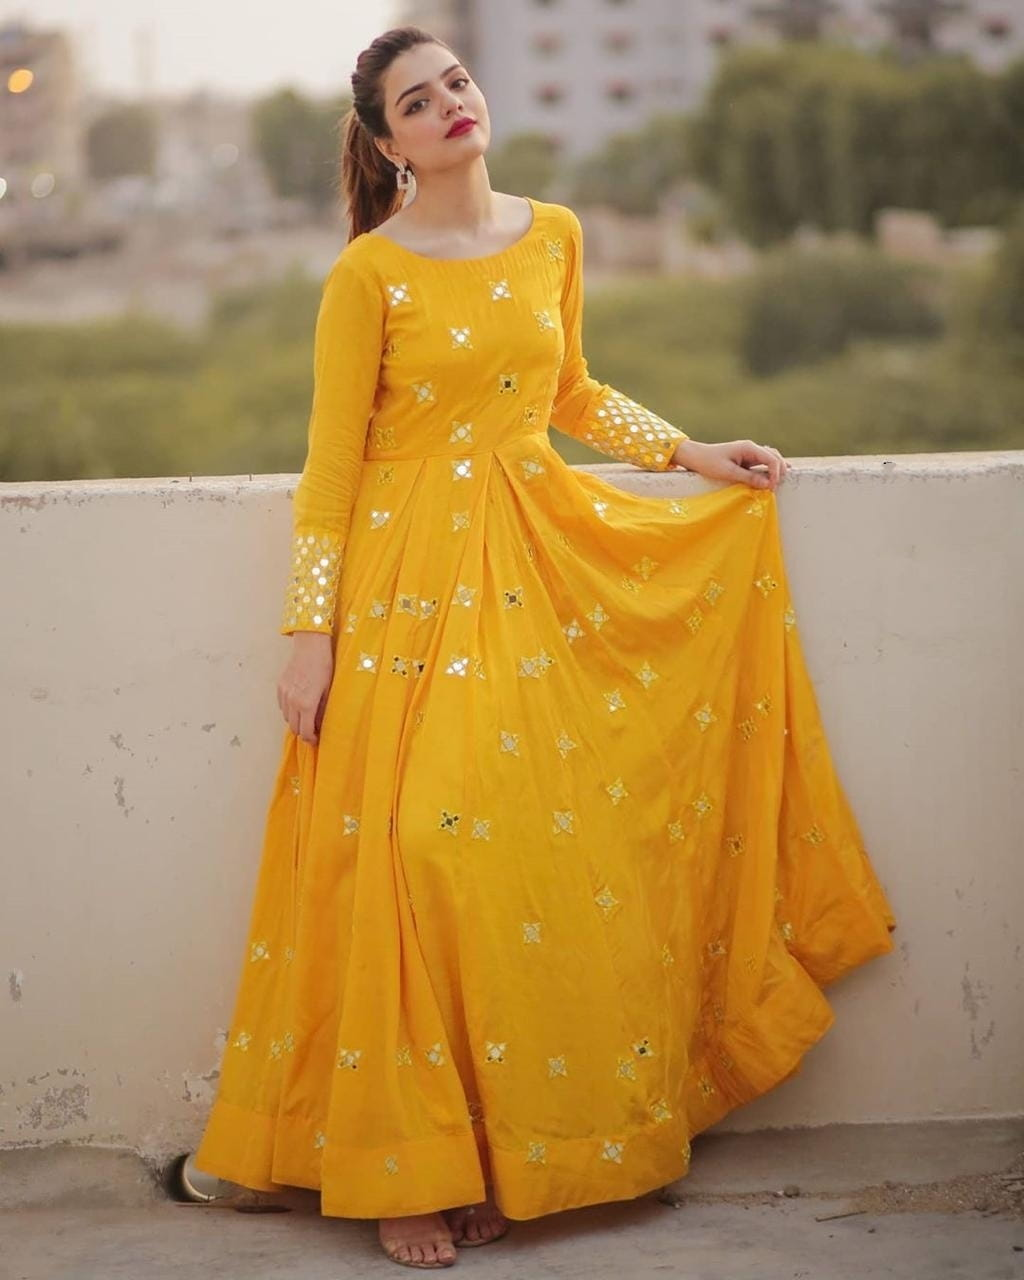 Unique Yellow Gown design for Girls